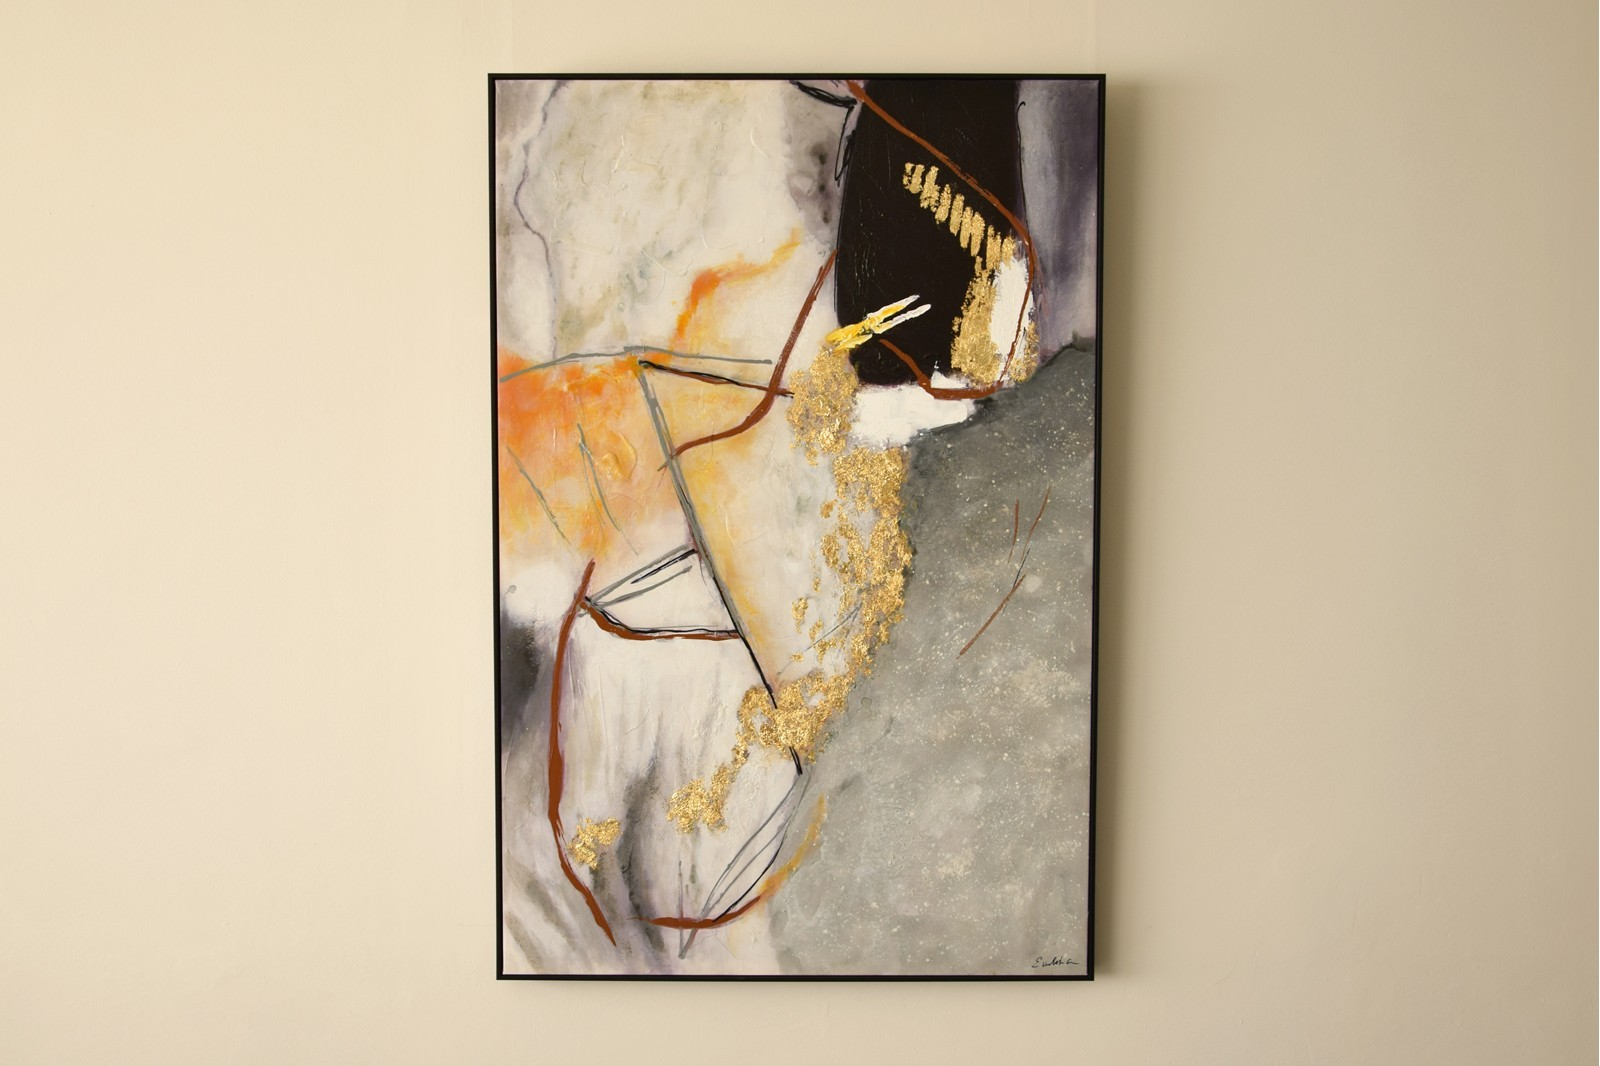 ABSTRACT PAINTING SUNSET WITH FRAME